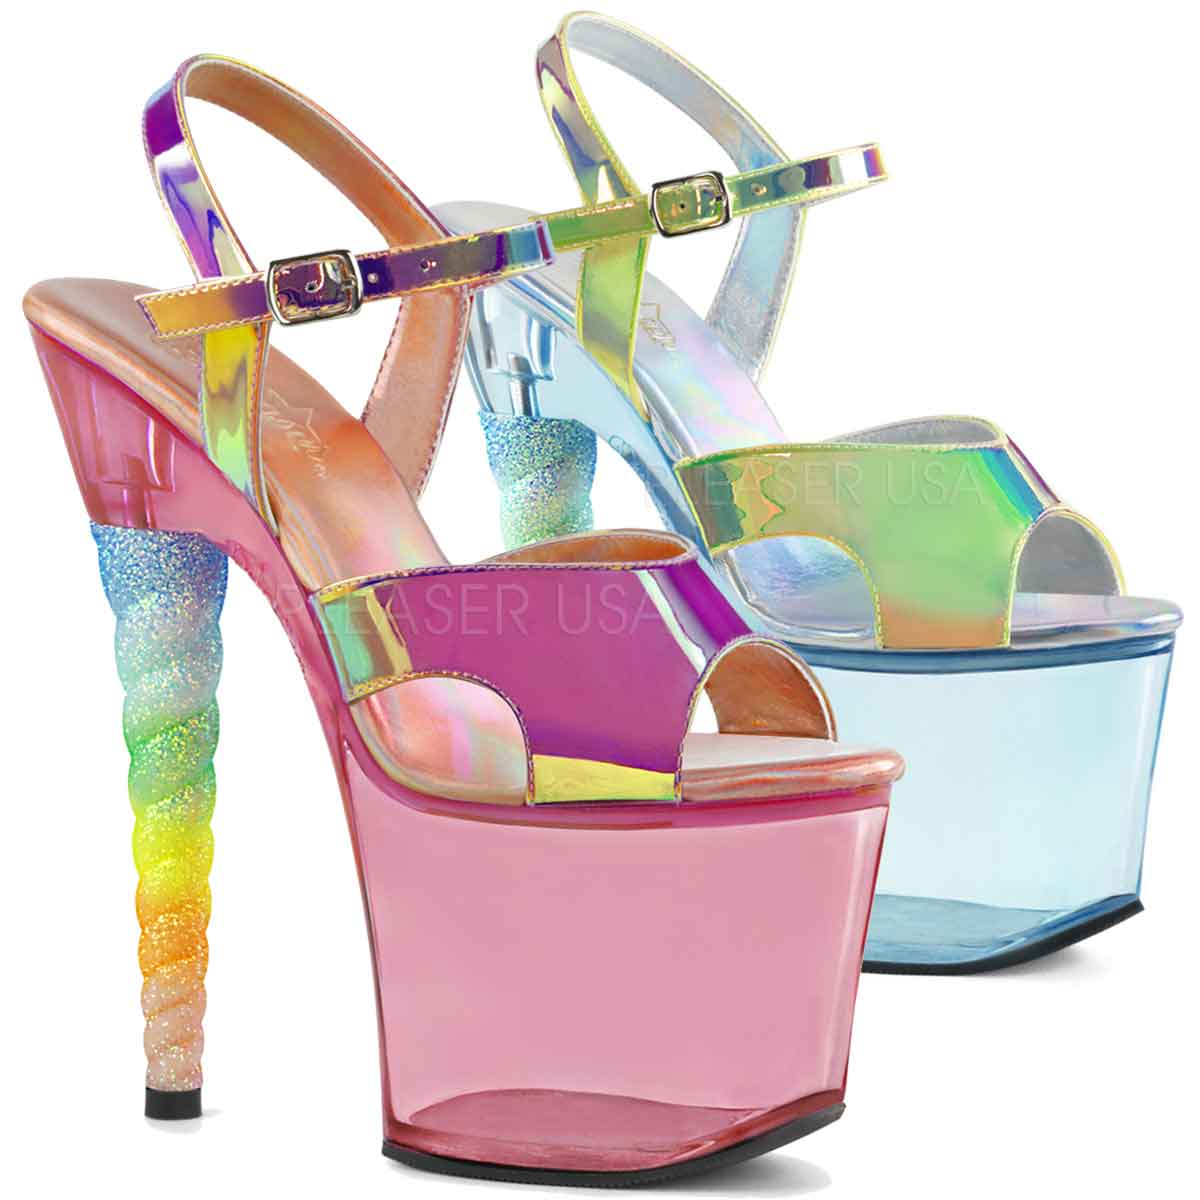 fee46b4a8a88f Pleaser Shoes | UNICORN-711T, Ombre Glitter Unicorn Heel Ankle Strap Sandal  color available ...